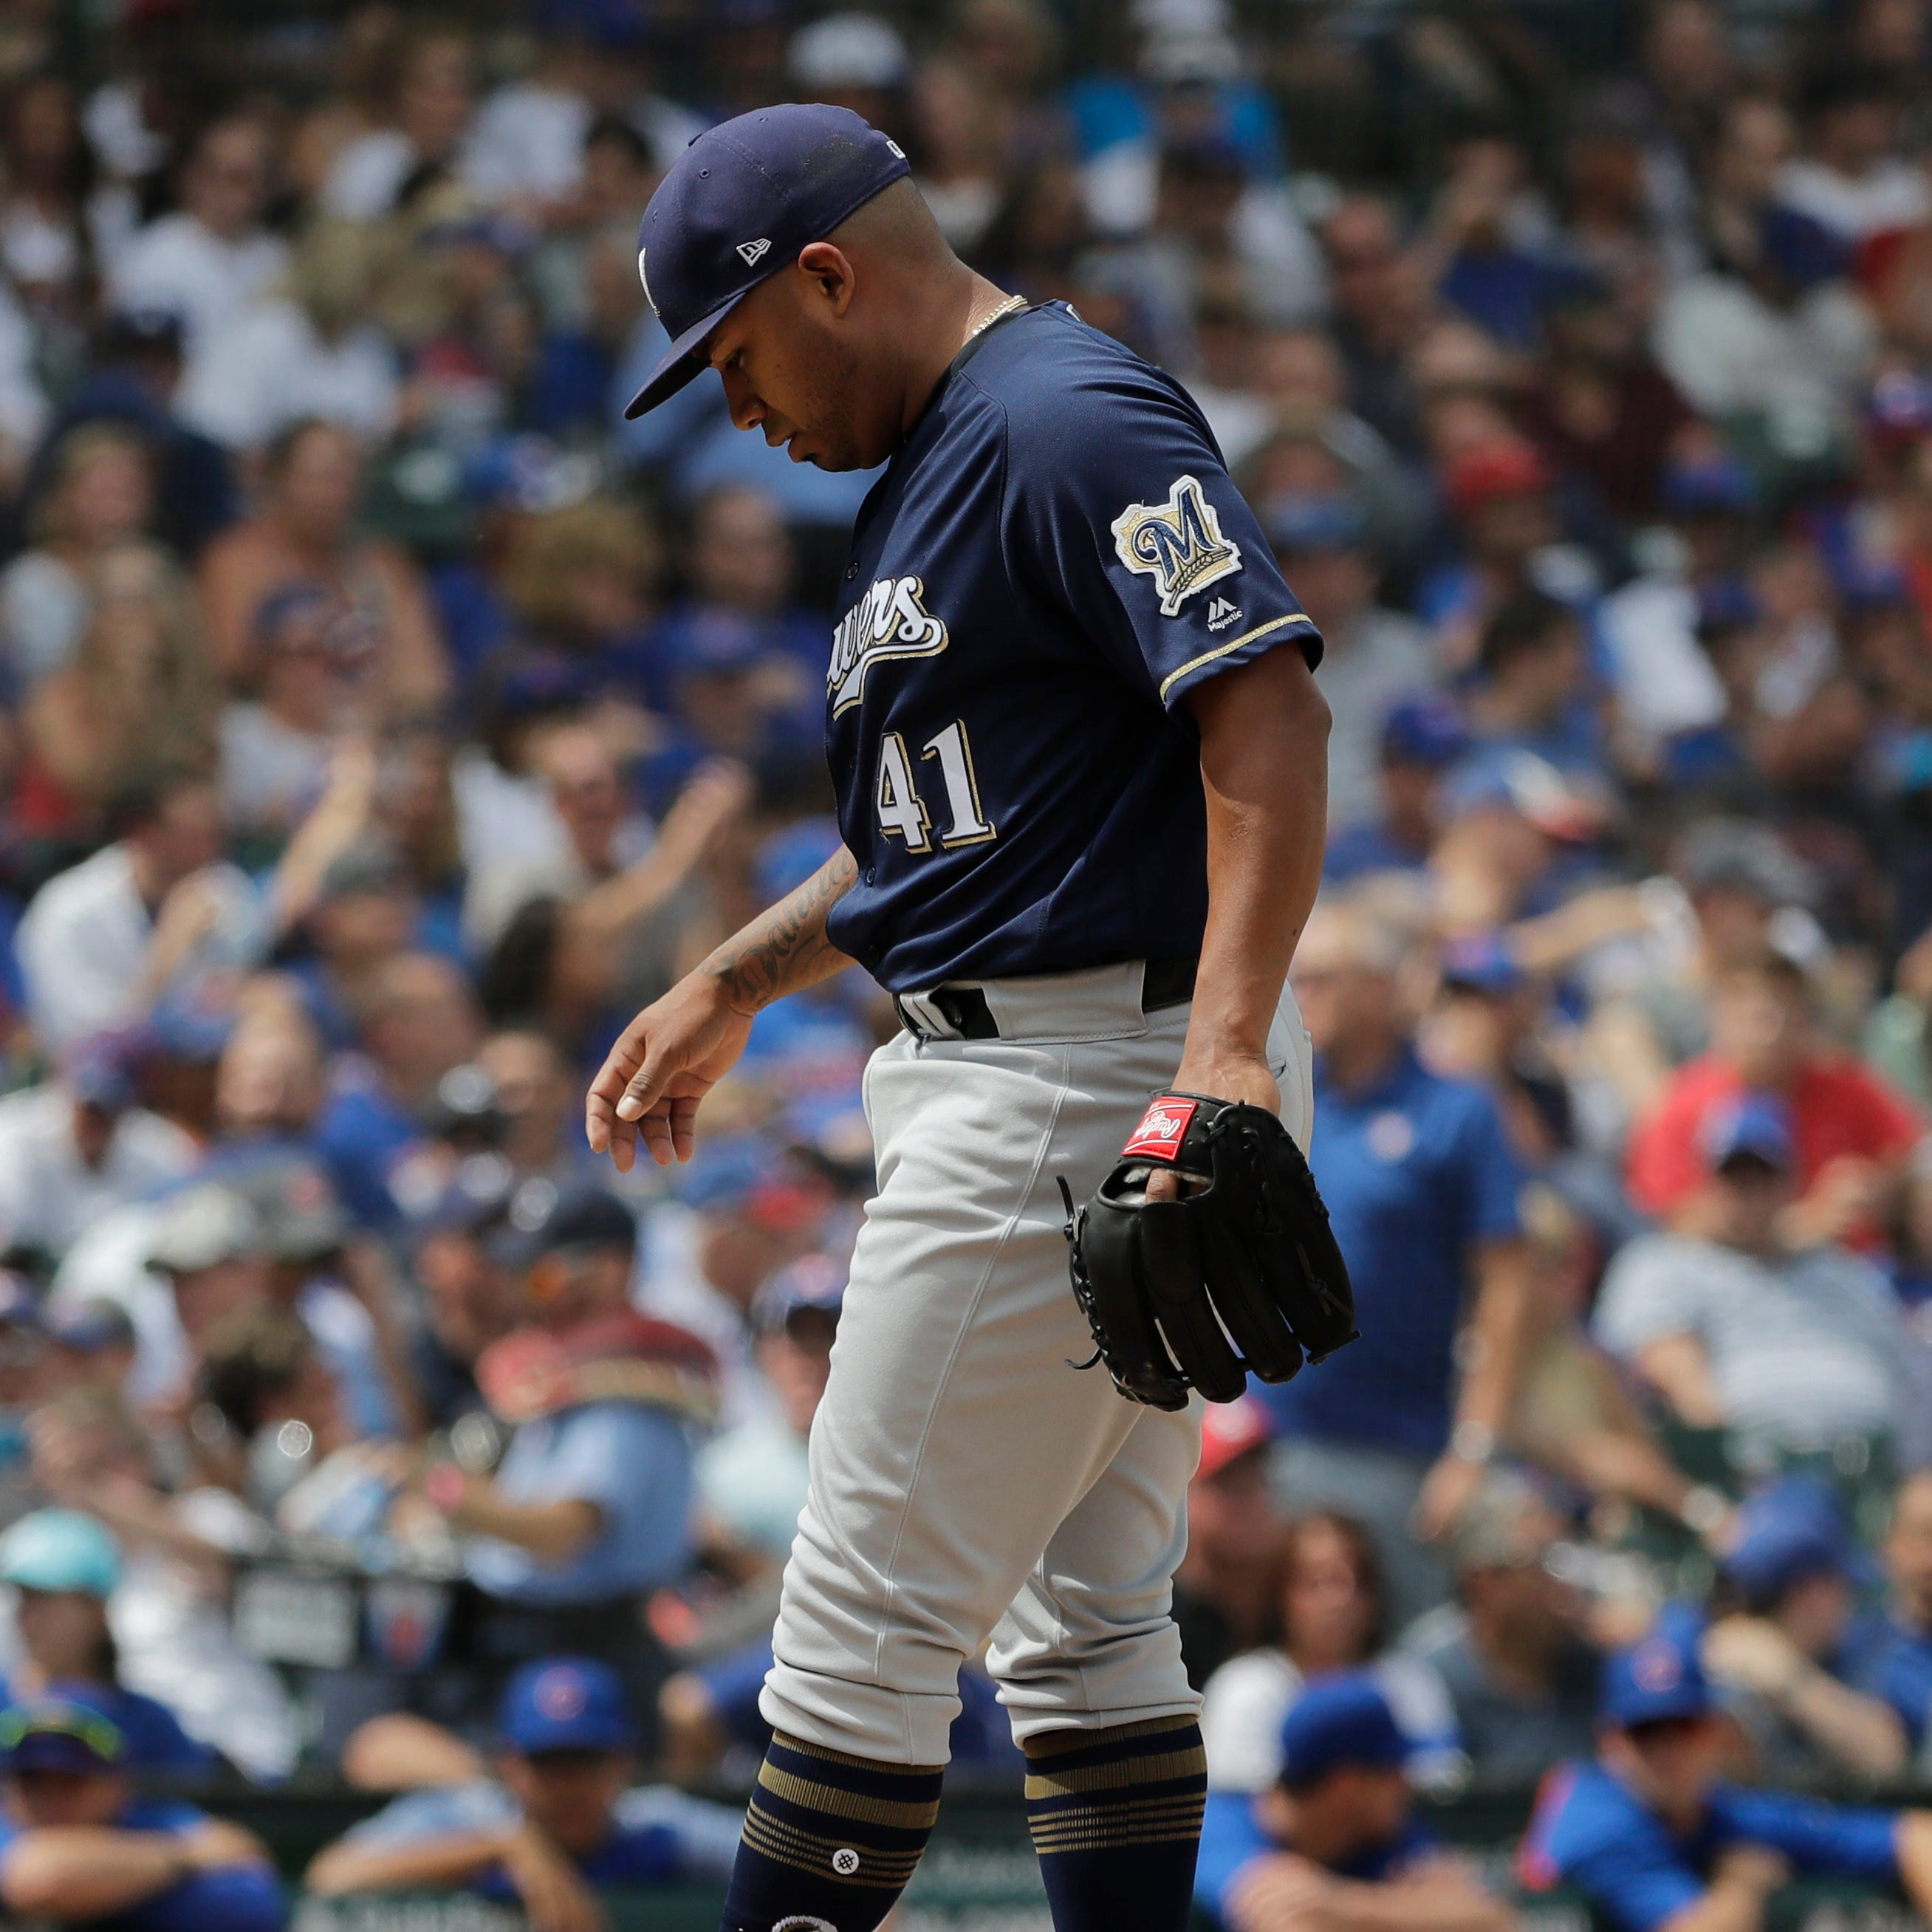 Milwaukee Brewers starting pitcher Junior Guerra kicks the mound during the third inning of a baseball game against the Chicago Cubs, Wednesday, Aug. 15, 2018, in Chicago. (AP Photo/Nam Y. Huh) ORG XMIT: OTKNH108